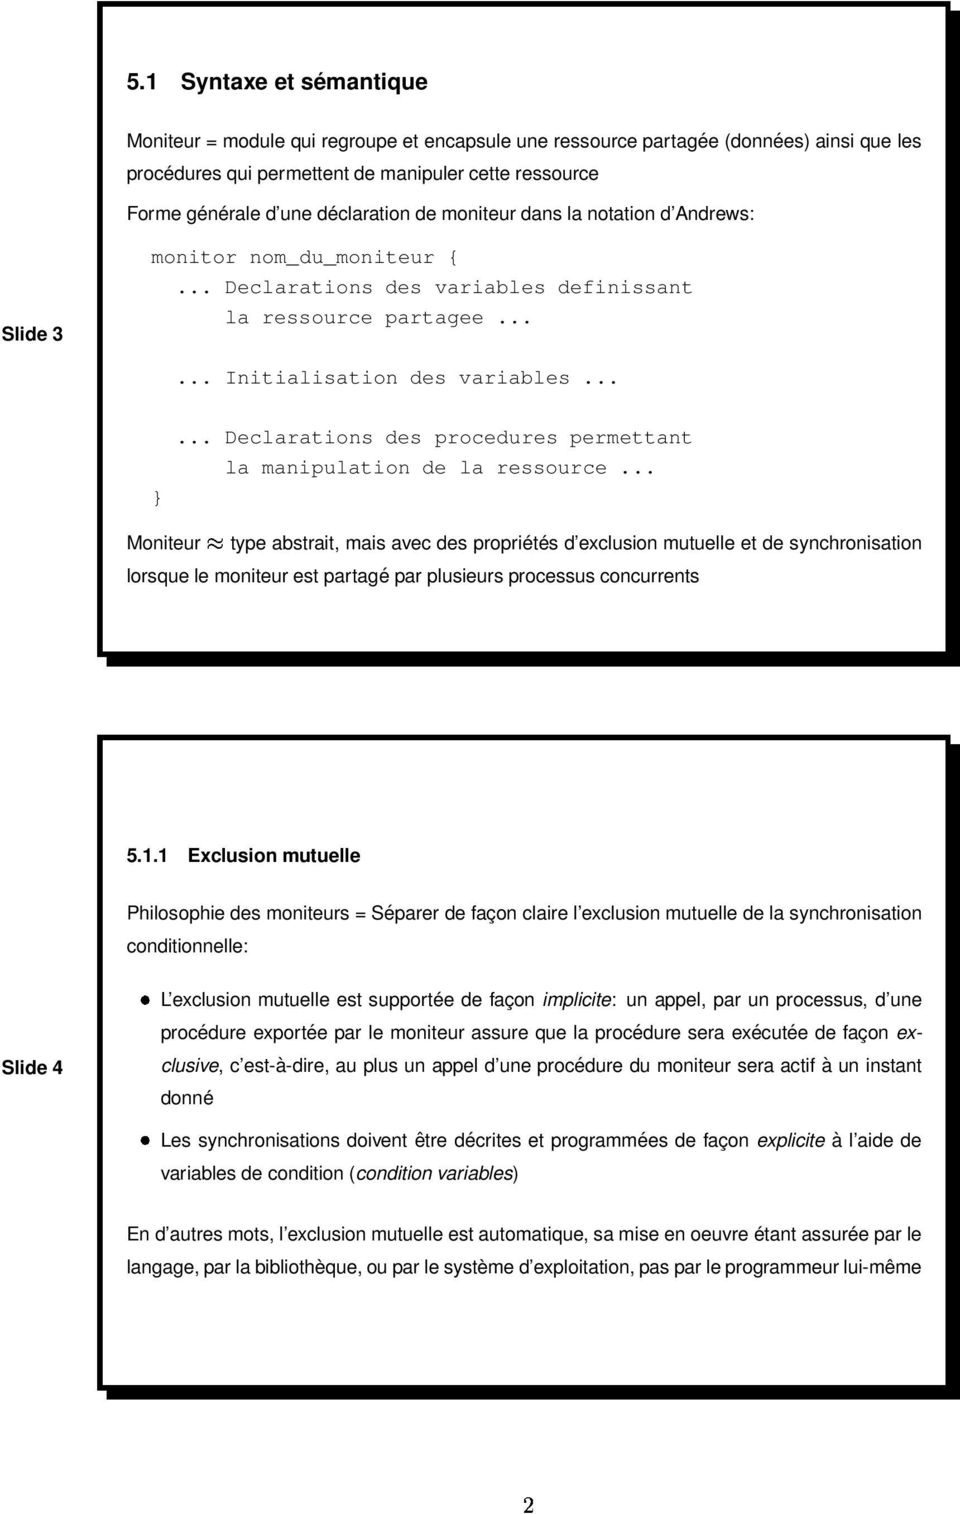 ..... Declarations des procedures permettant la manipulation de la ressource.